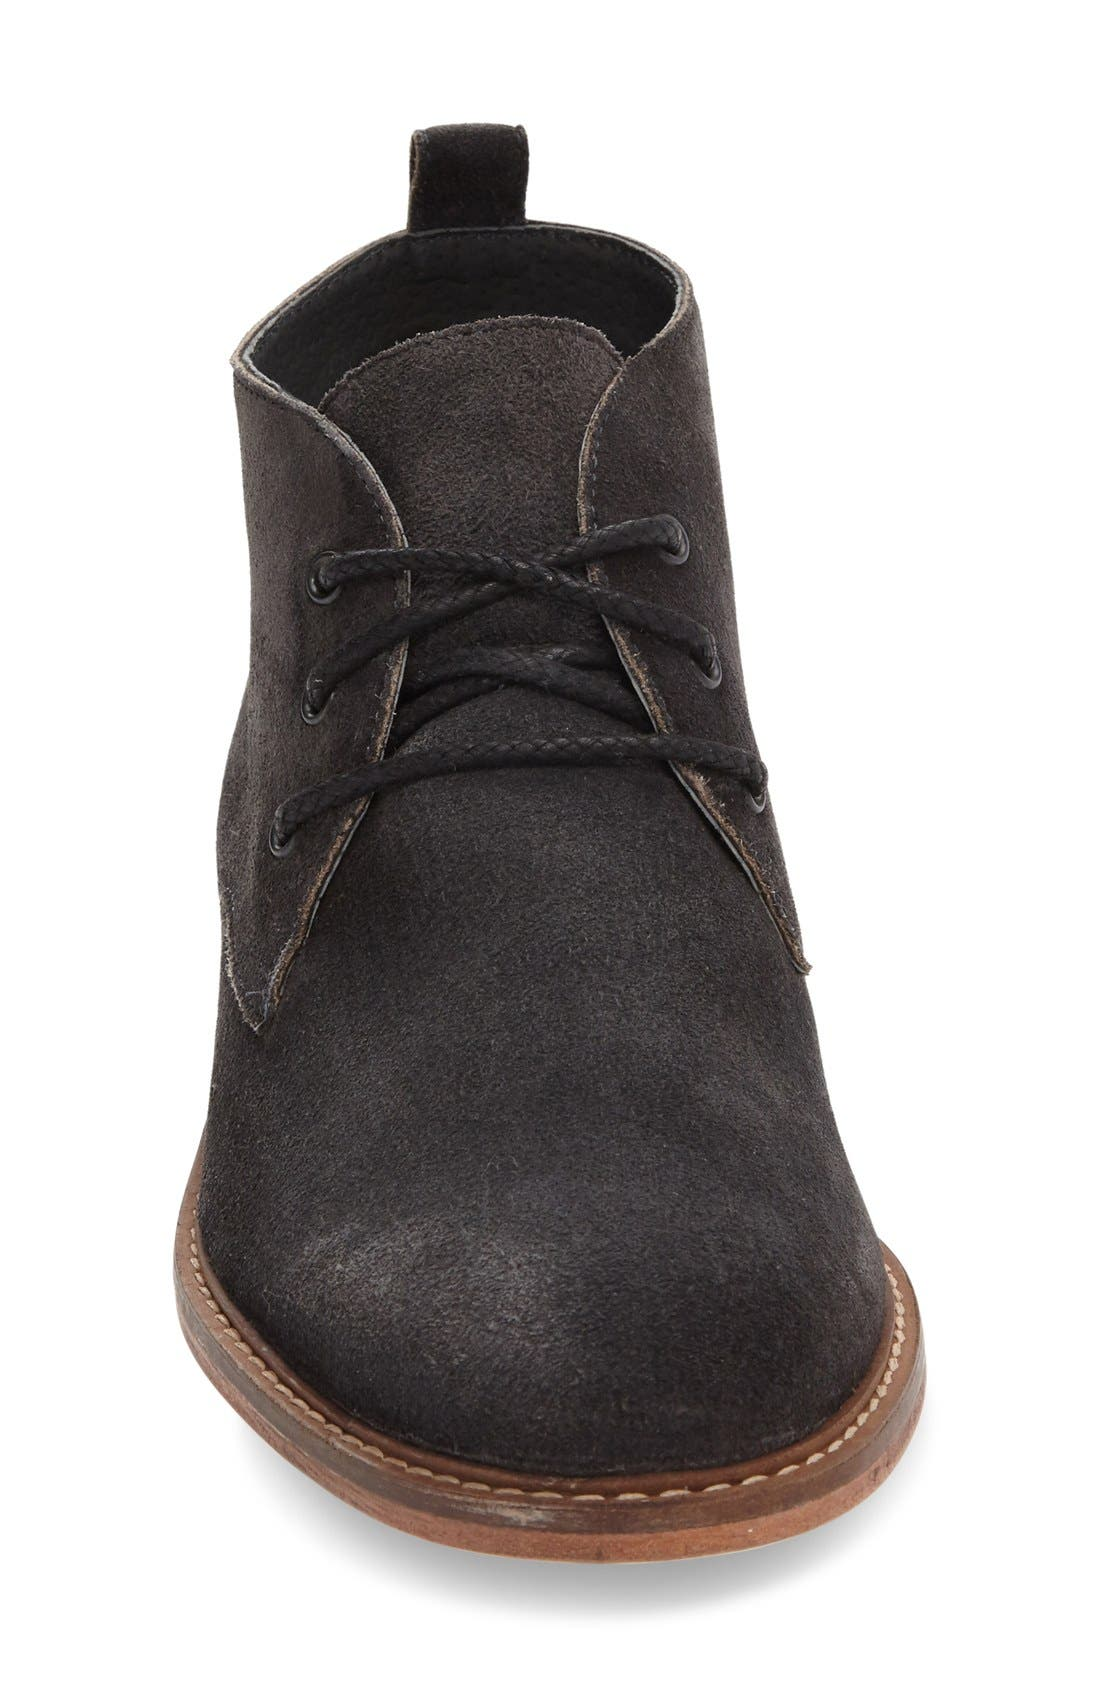 Prove Out Chukka Boot,                             Alternate thumbnail 2, color,                             020